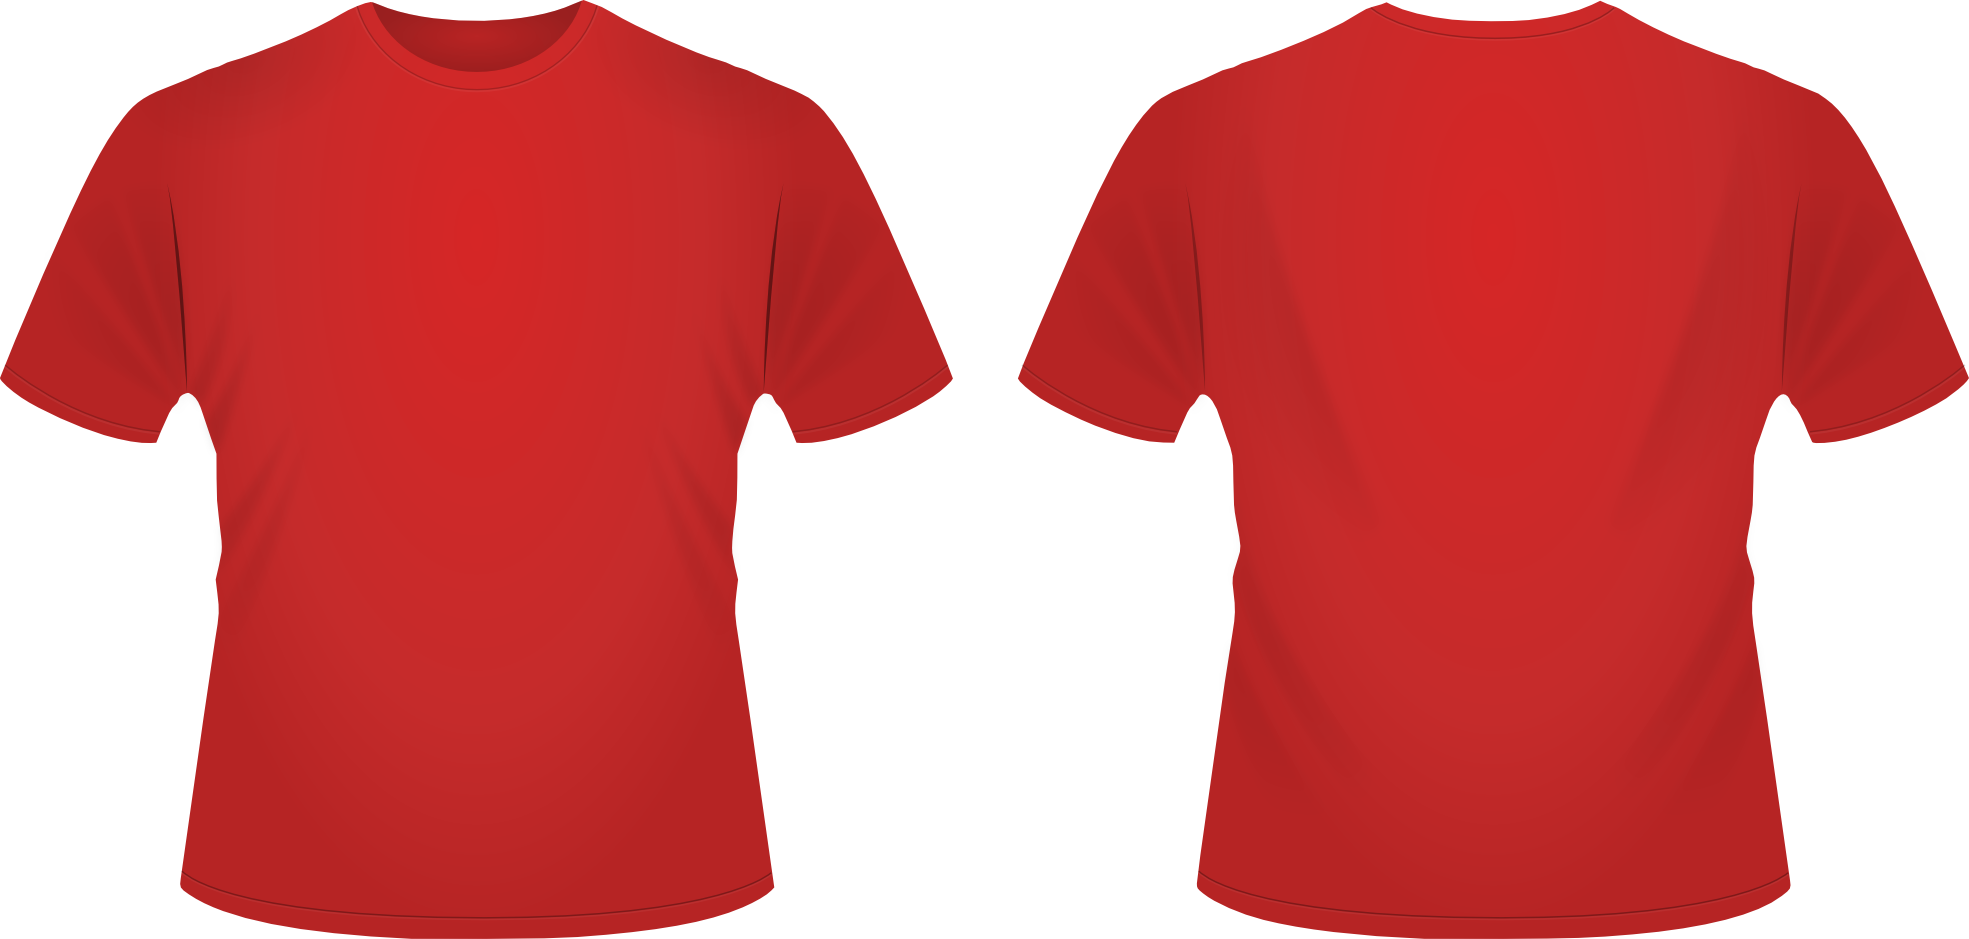 Blank red t shirt clipart jpg royalty free stock Plain Red T Shirt Template - Clip Art Library jpg royalty free stock